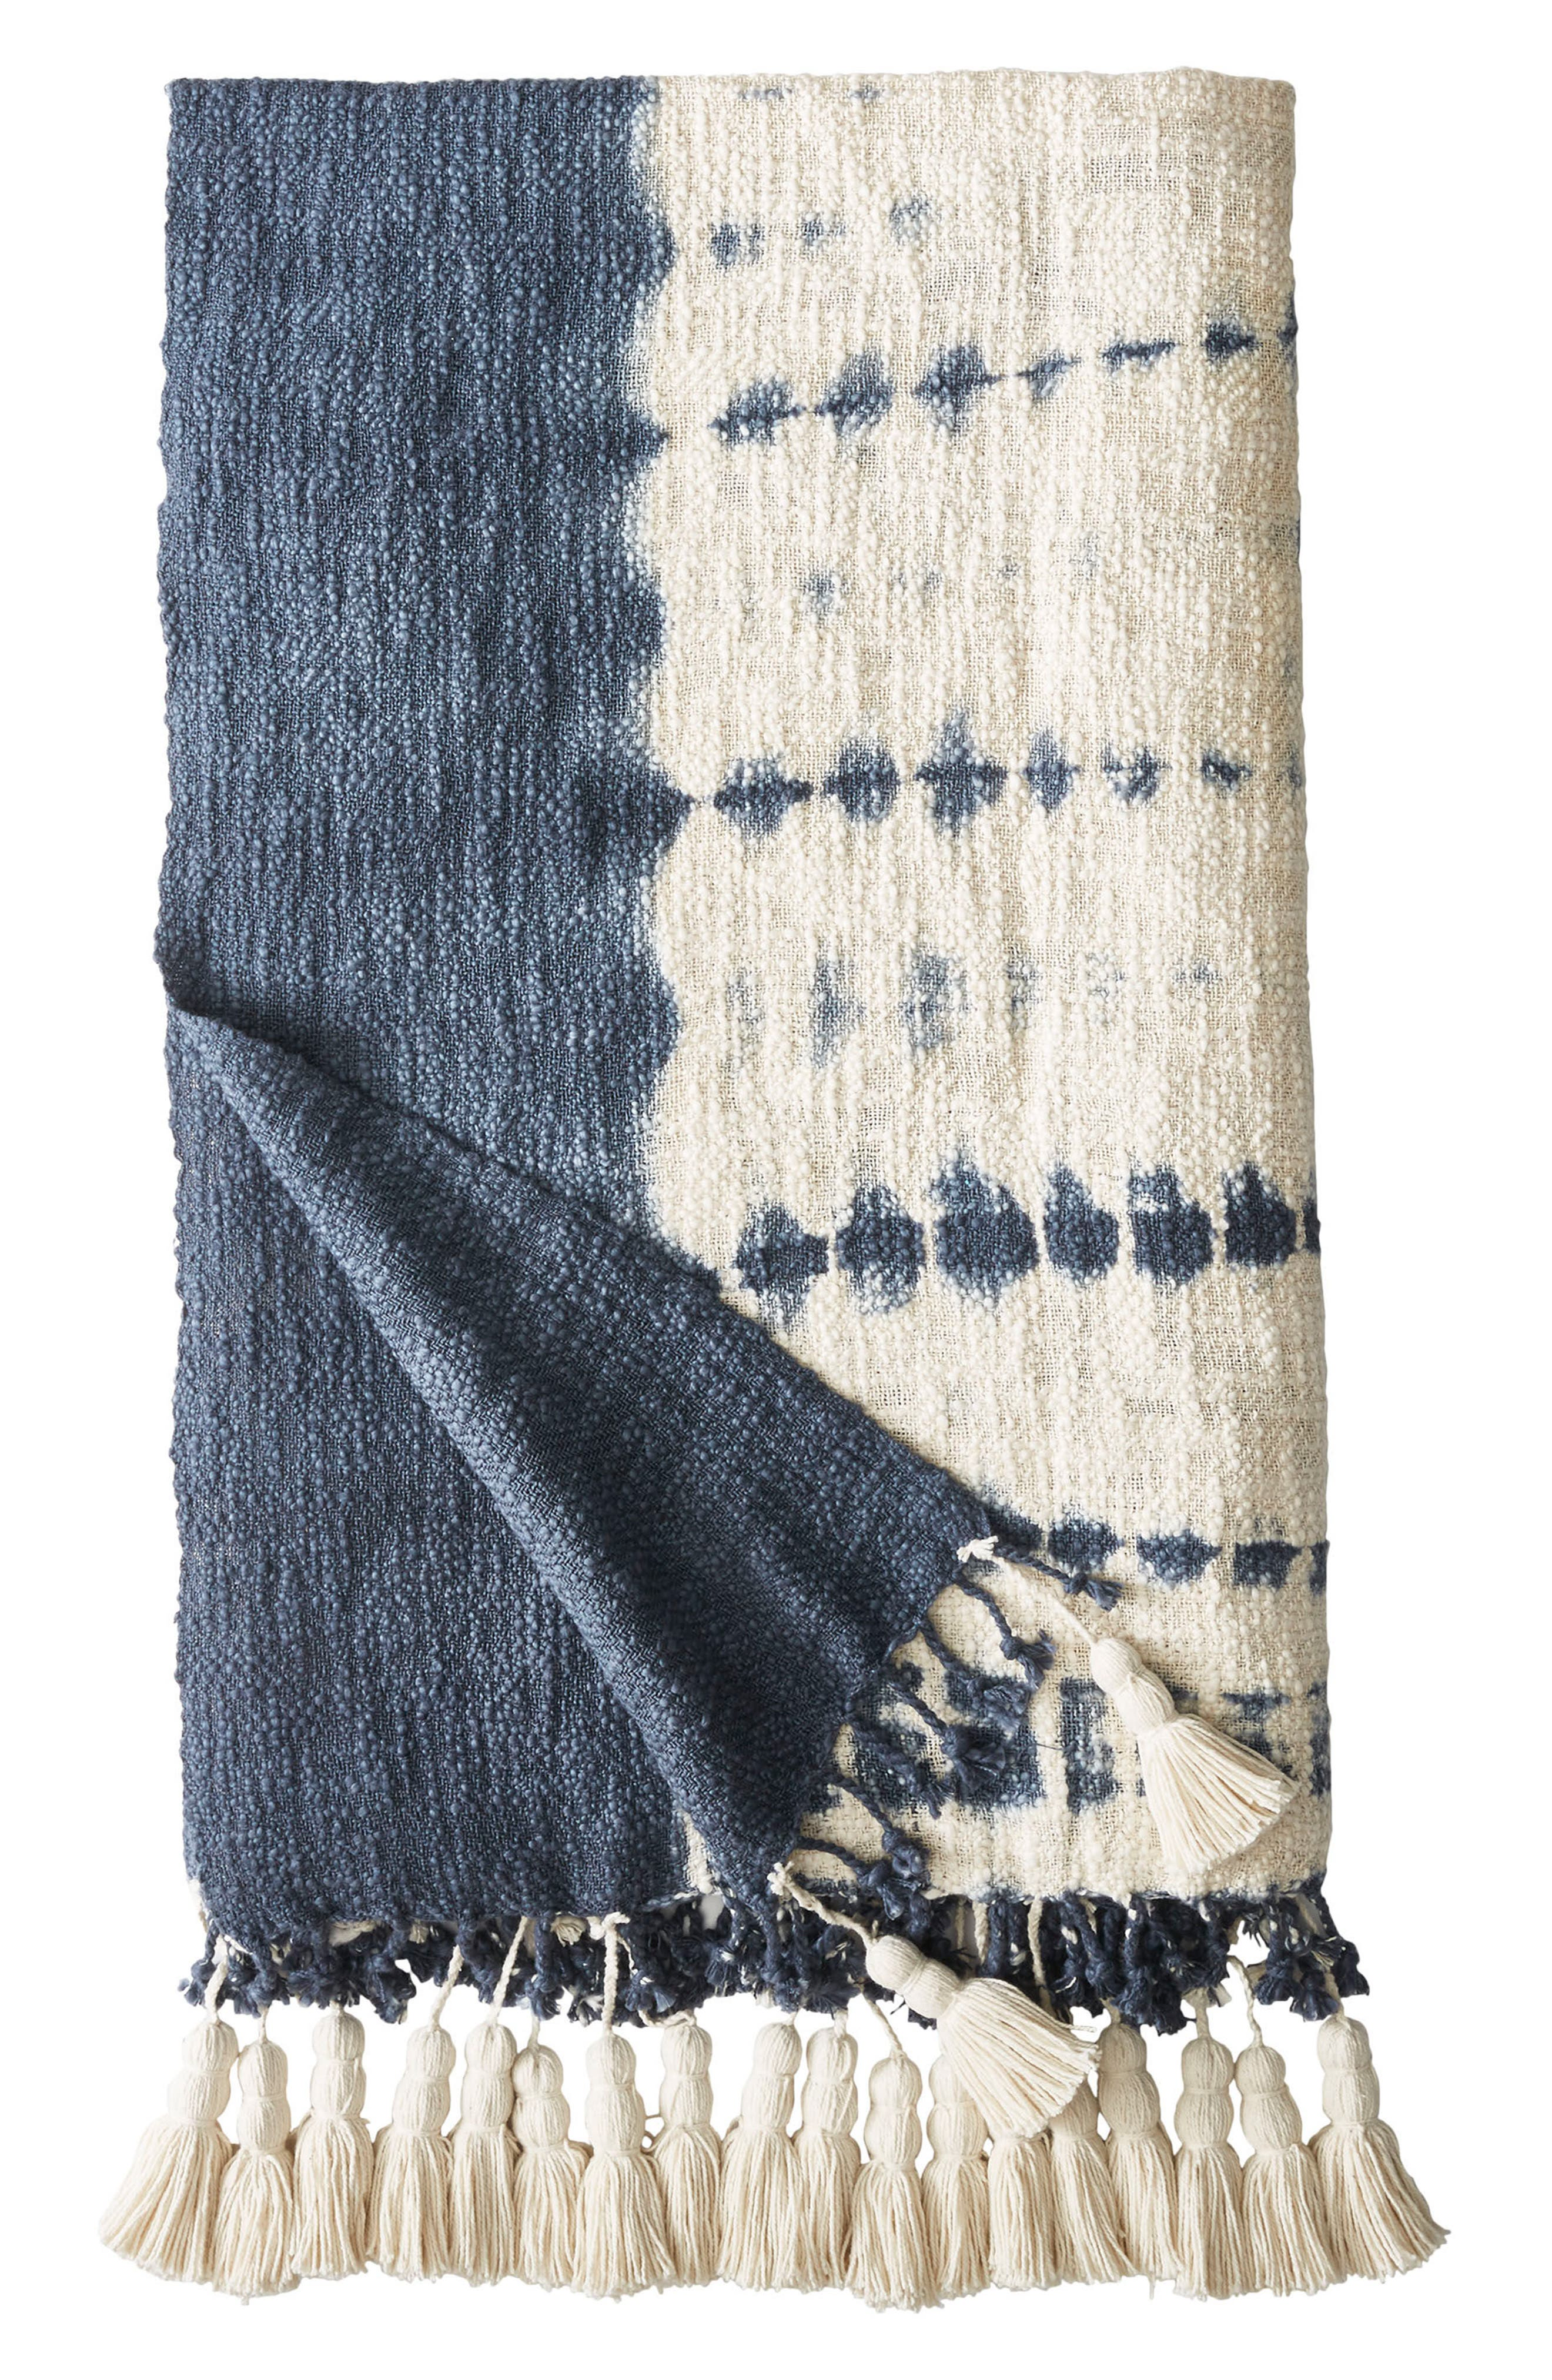 Island Indigo Throw Blanket,                         Main,                         color, 415